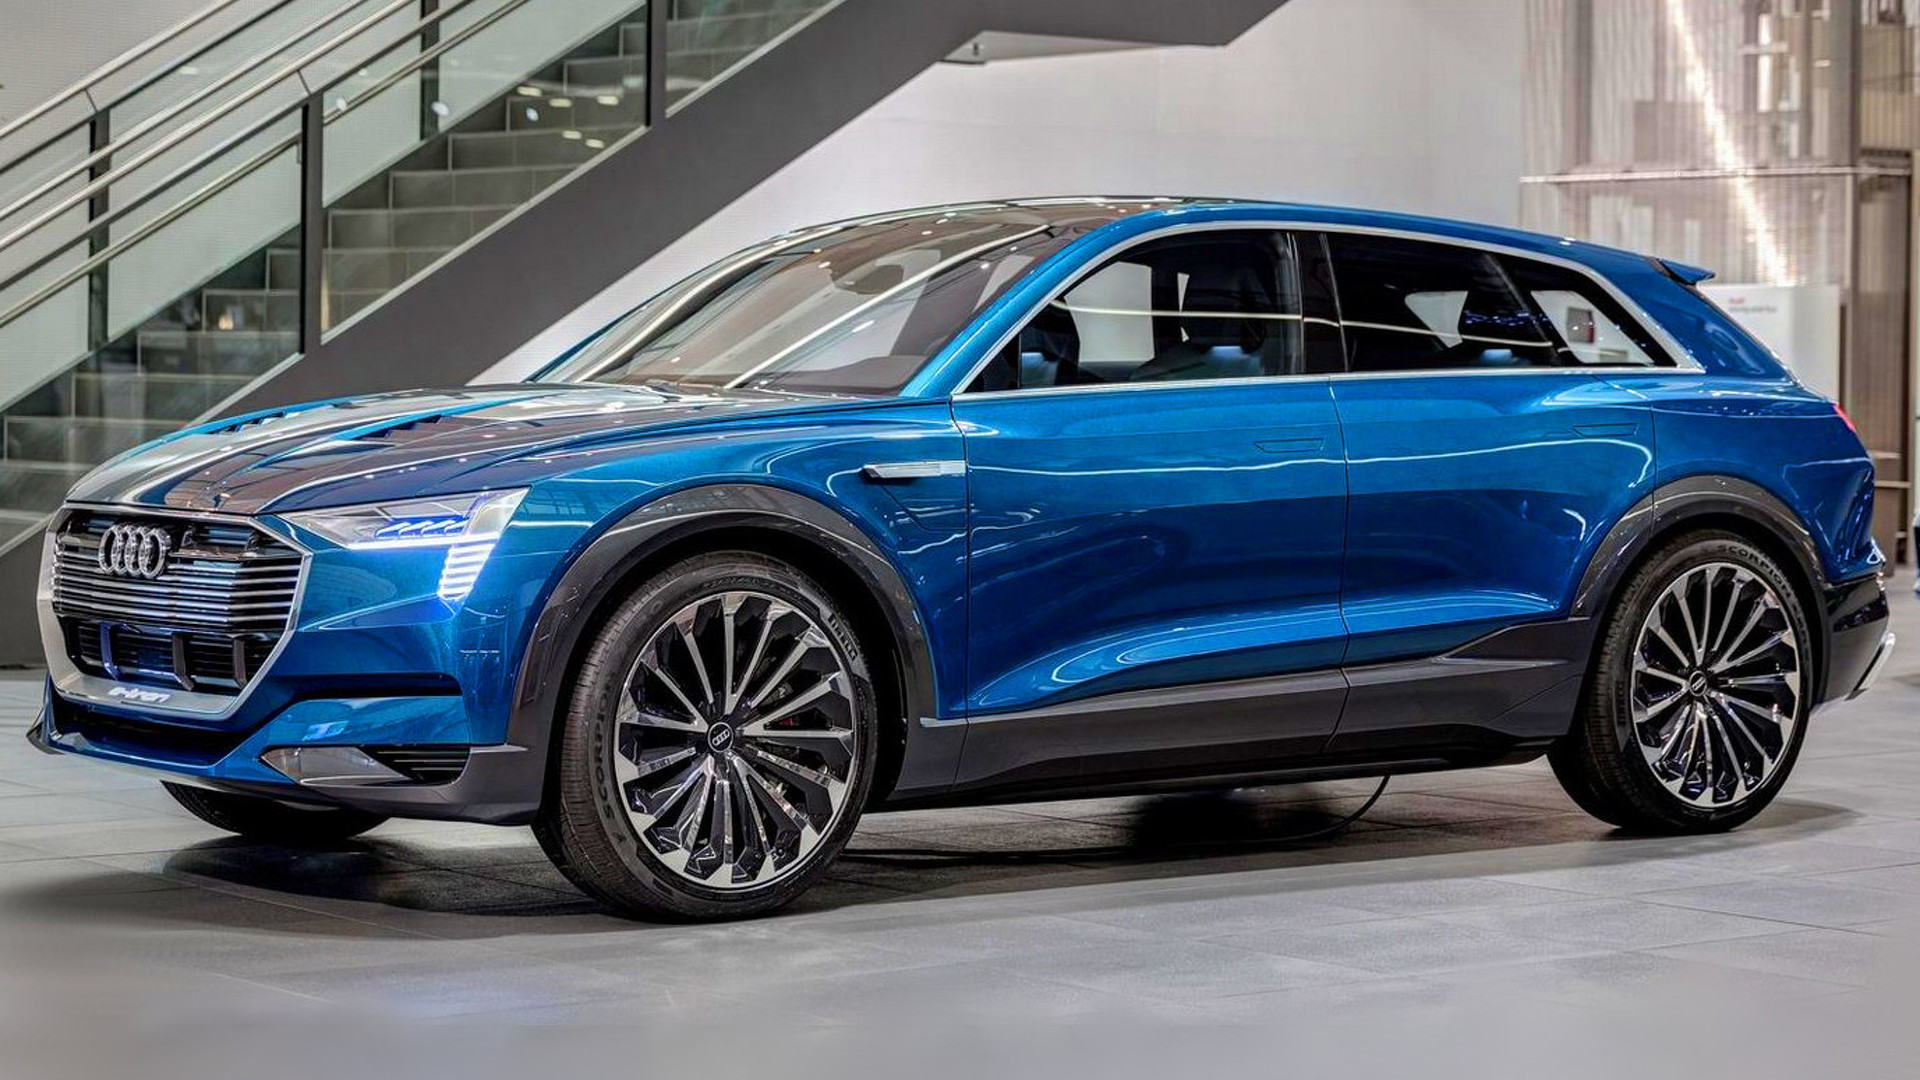 Image result for audi e-tron quattro